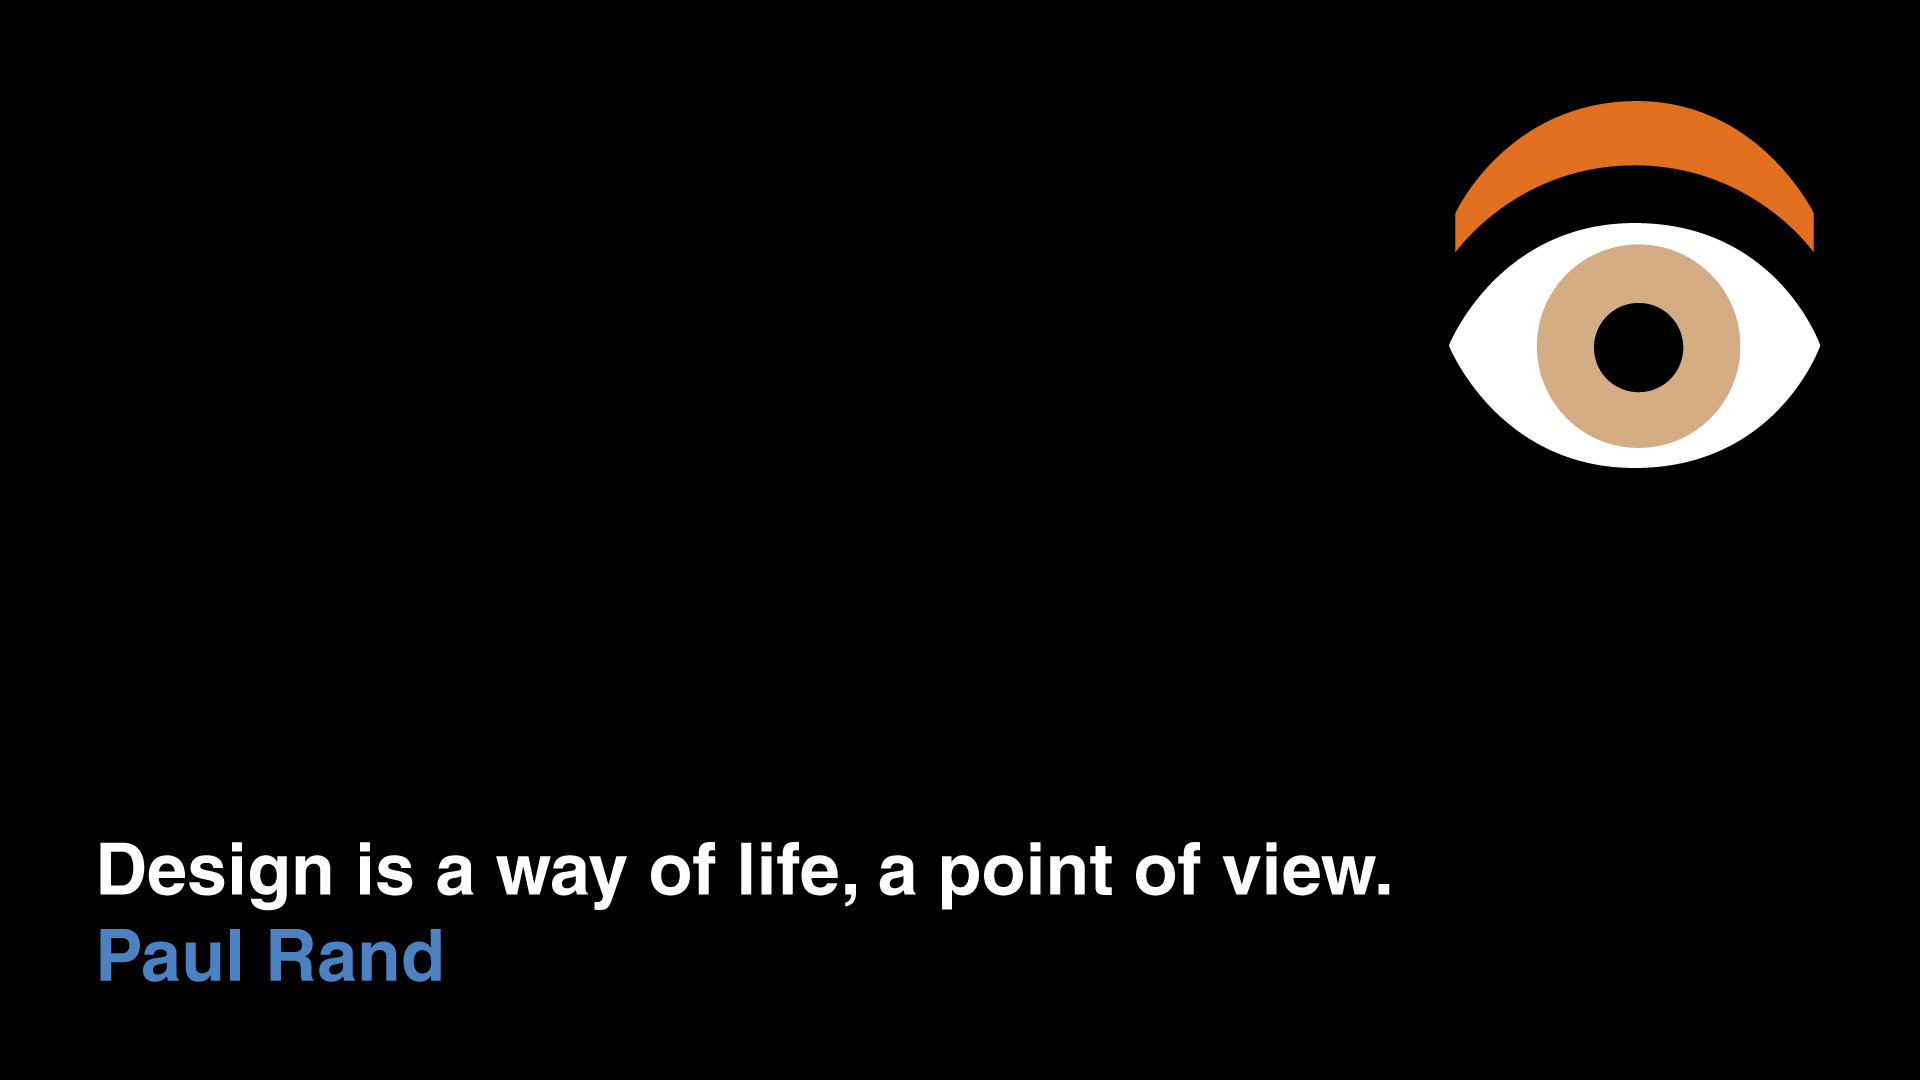 Inspirational Quotes from Famous Designers - Paul-Rand - Point of View